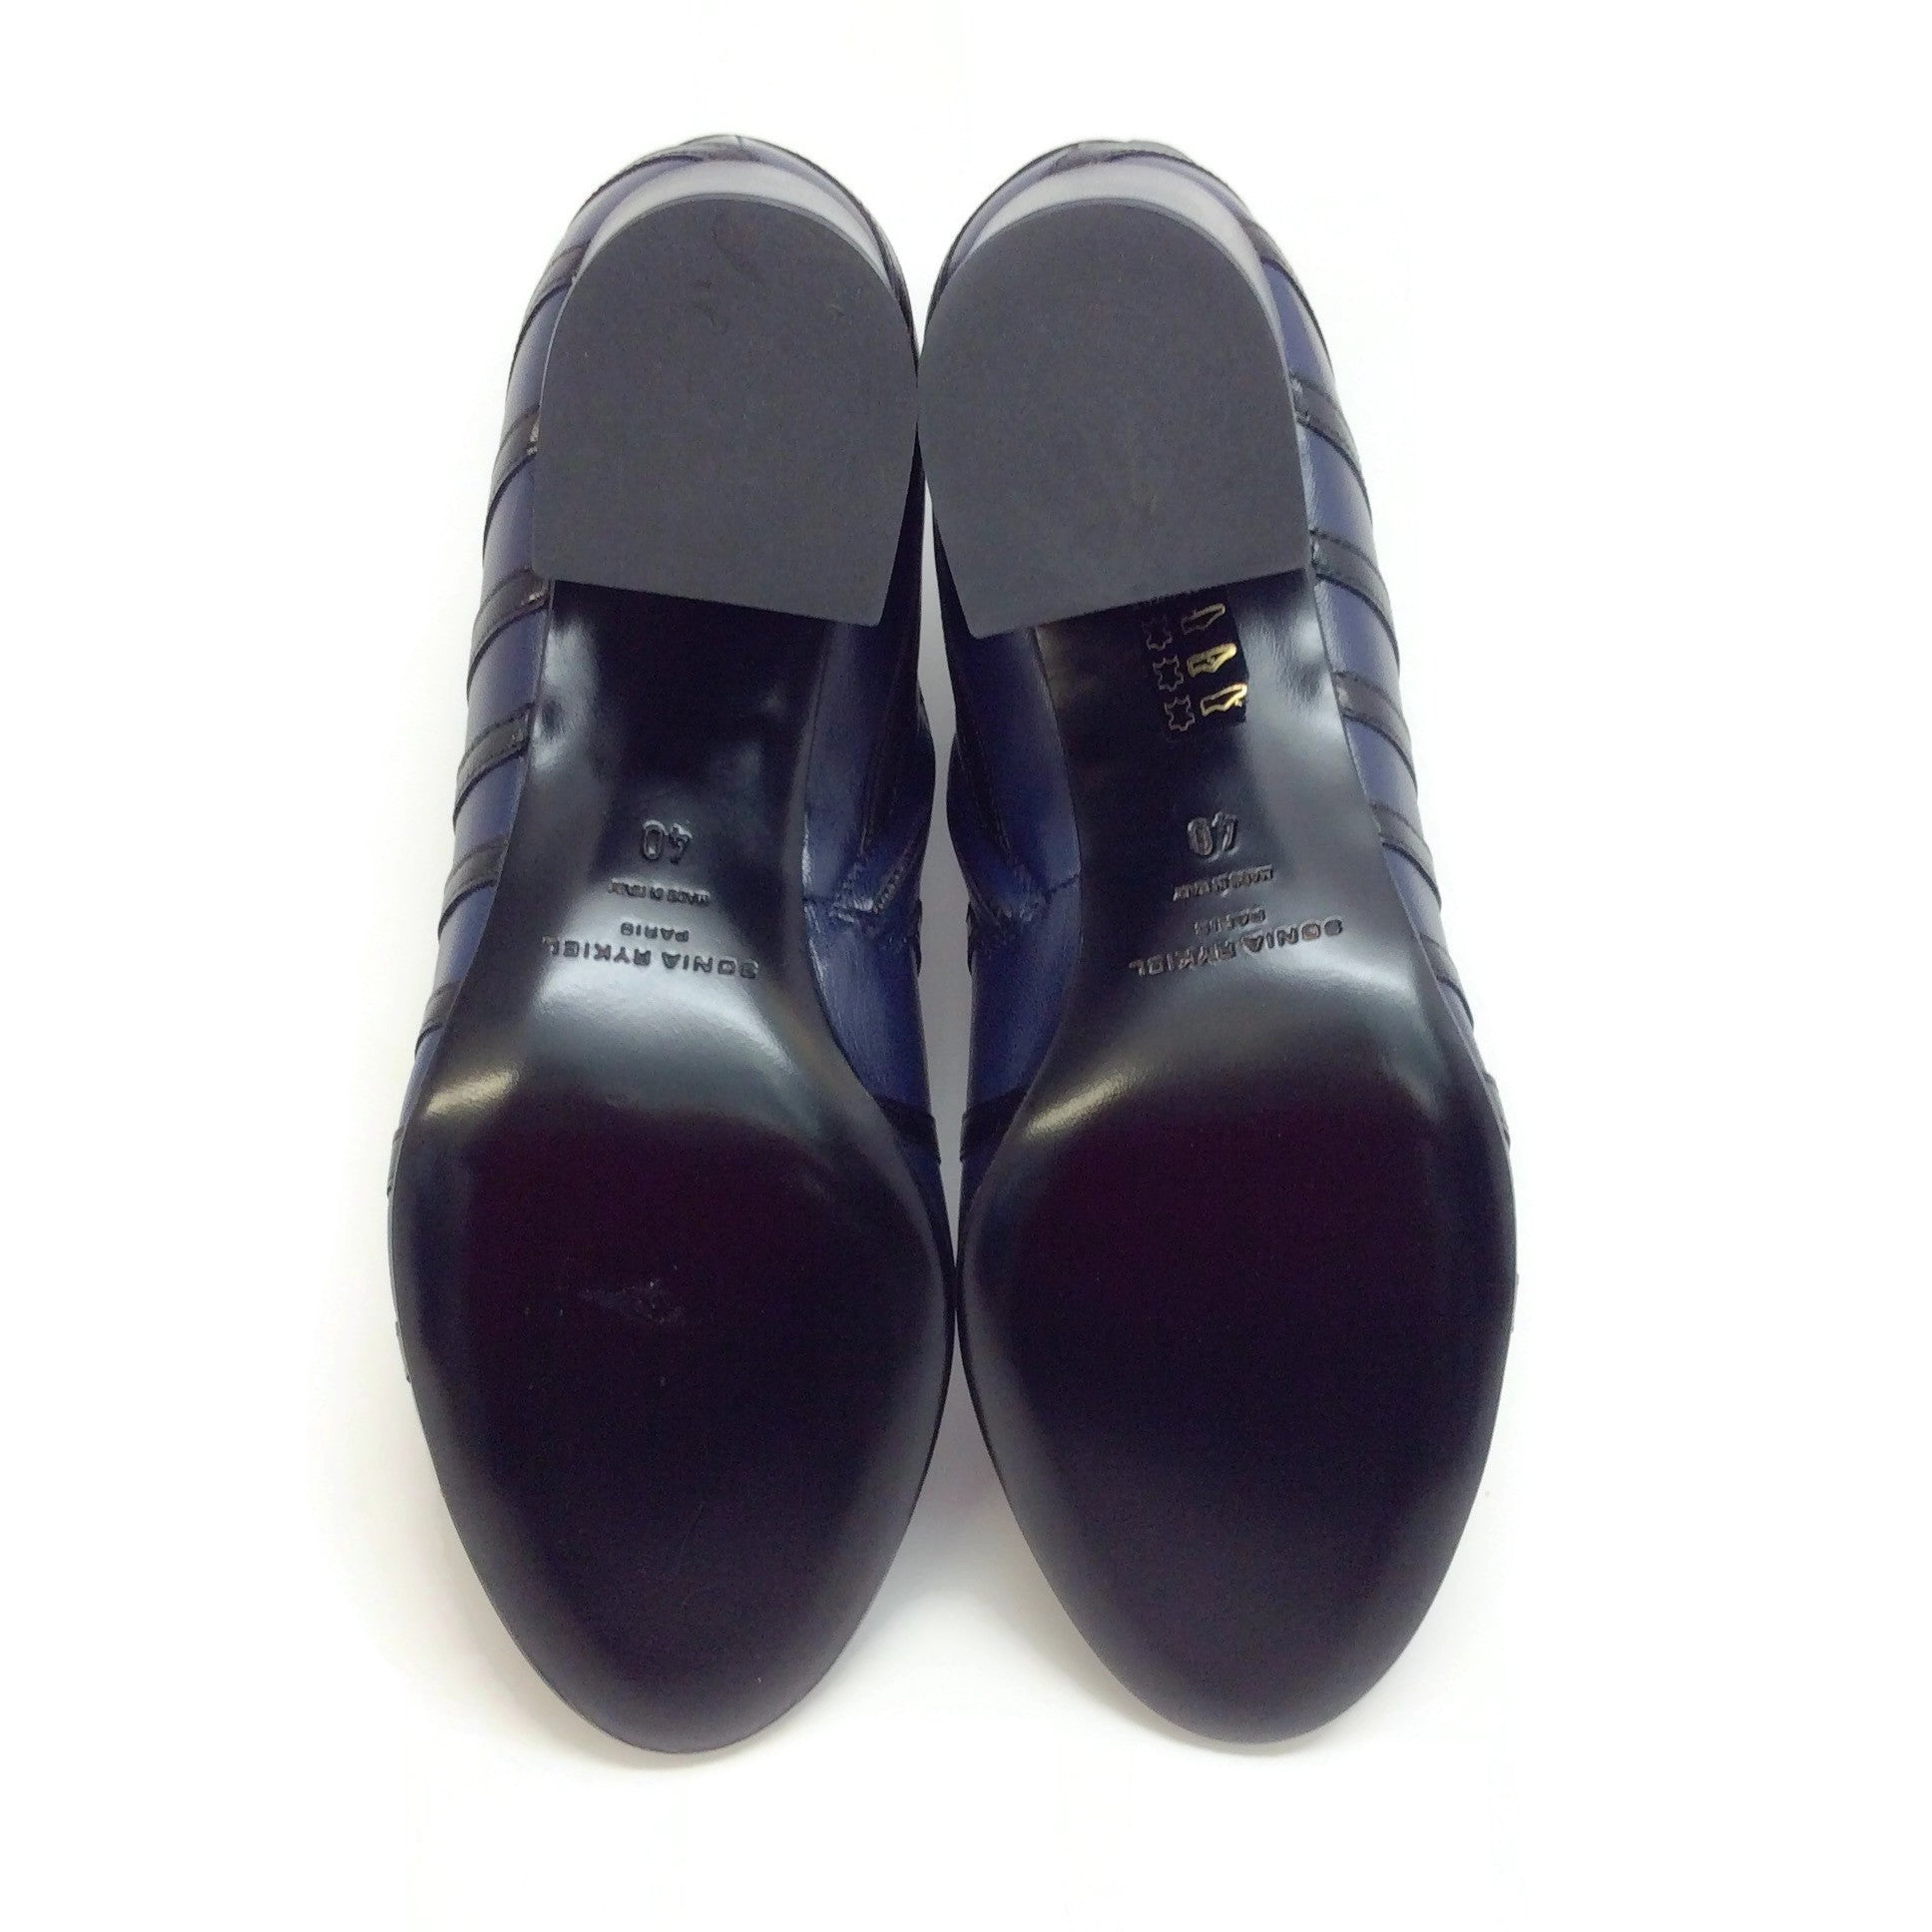 Sonia Rykiel Navy / Black Leather Stripe Detail Chunky Heel Boots